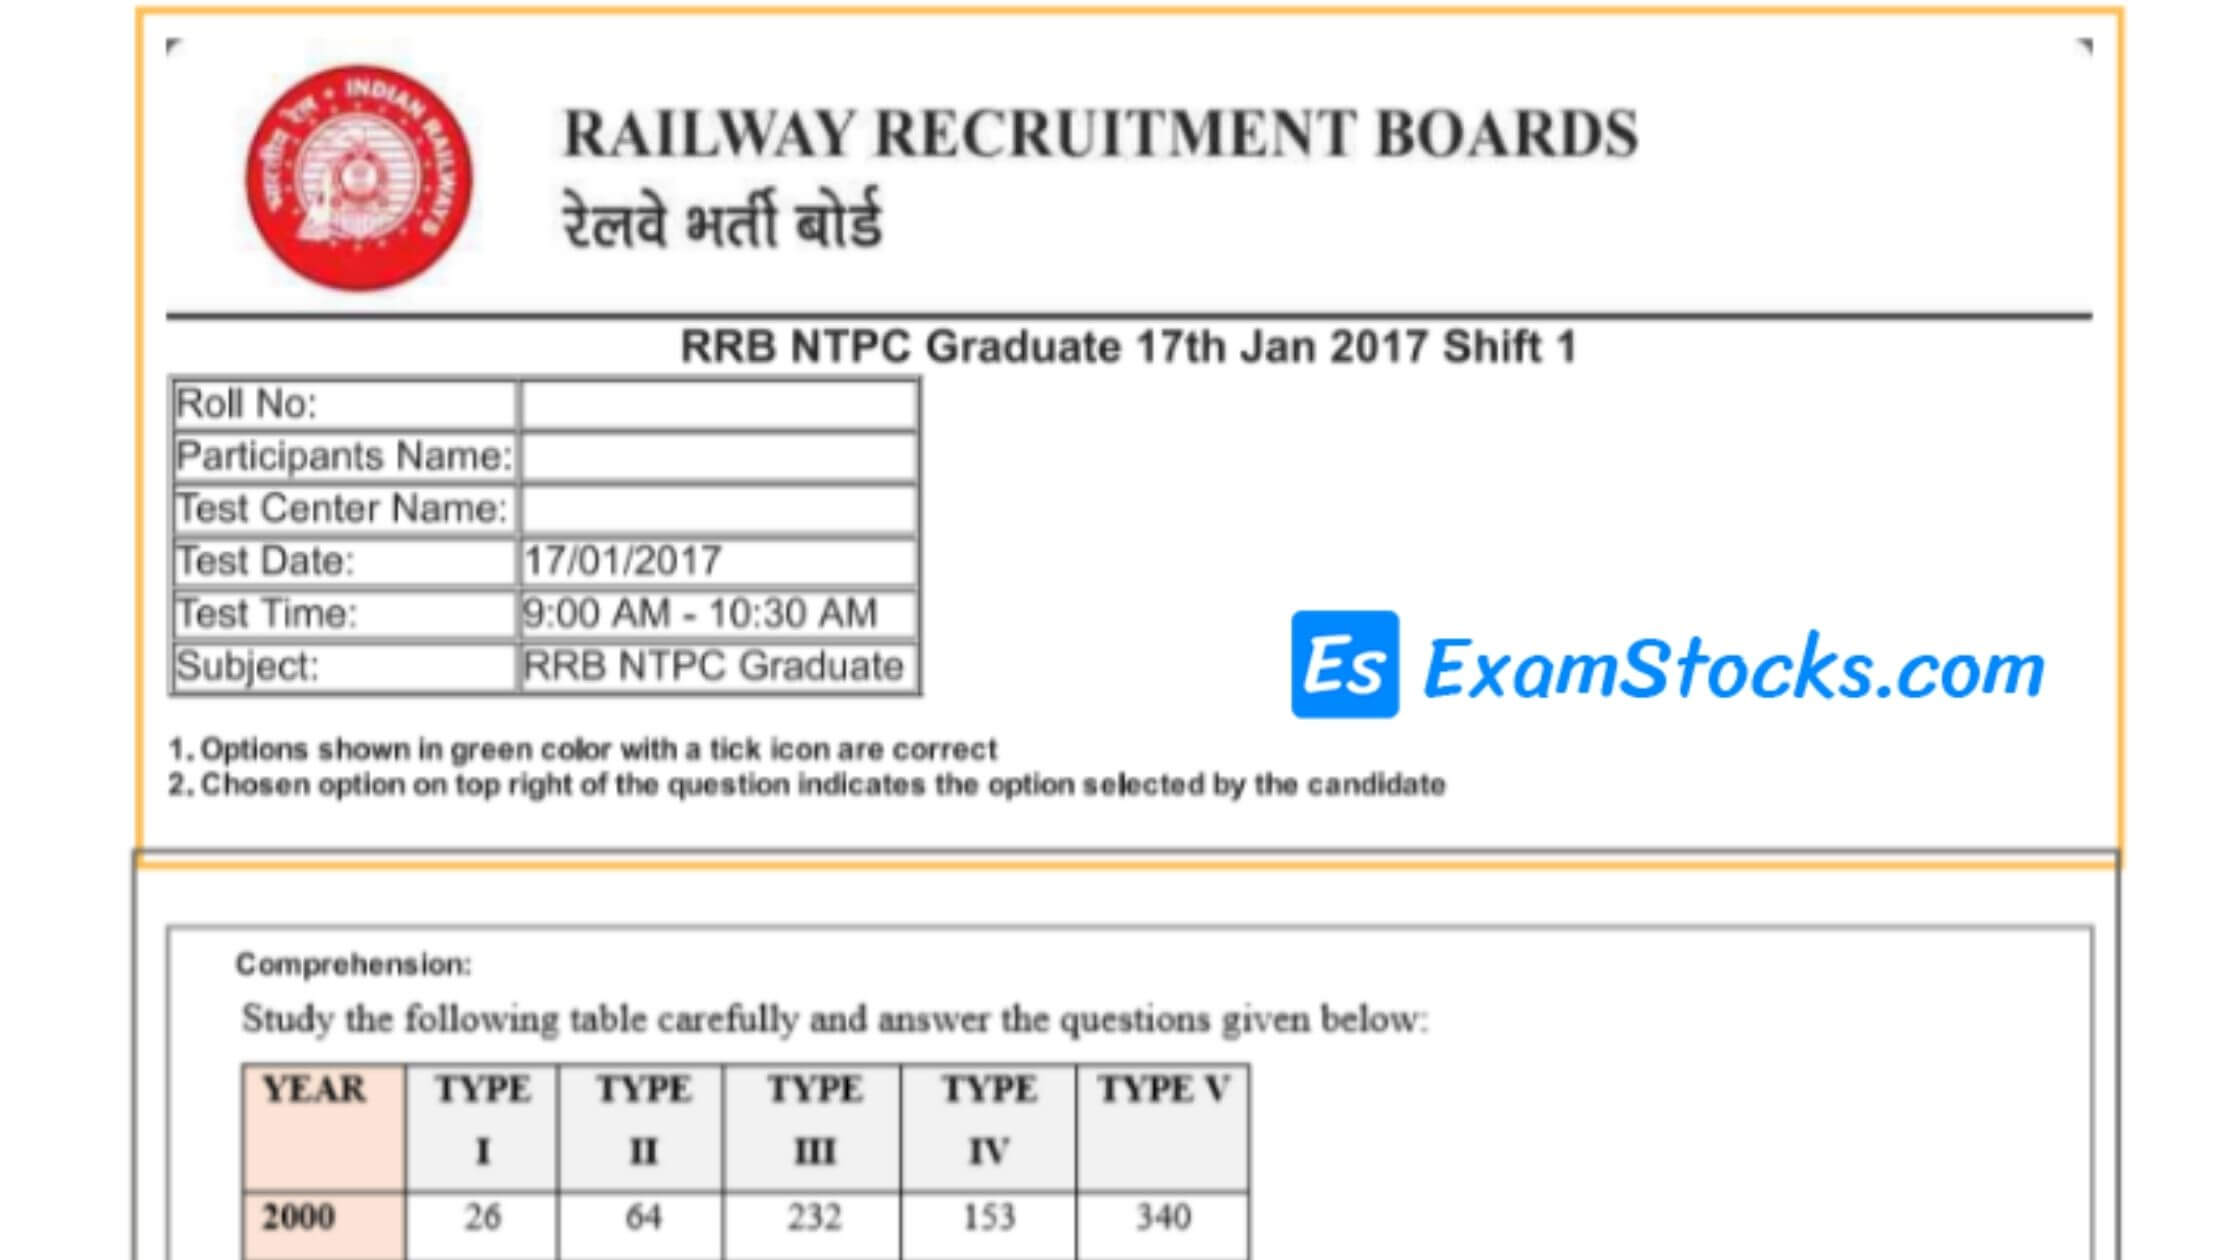 RRB NTPC CBT 2 Previous Year Question Papers PDF